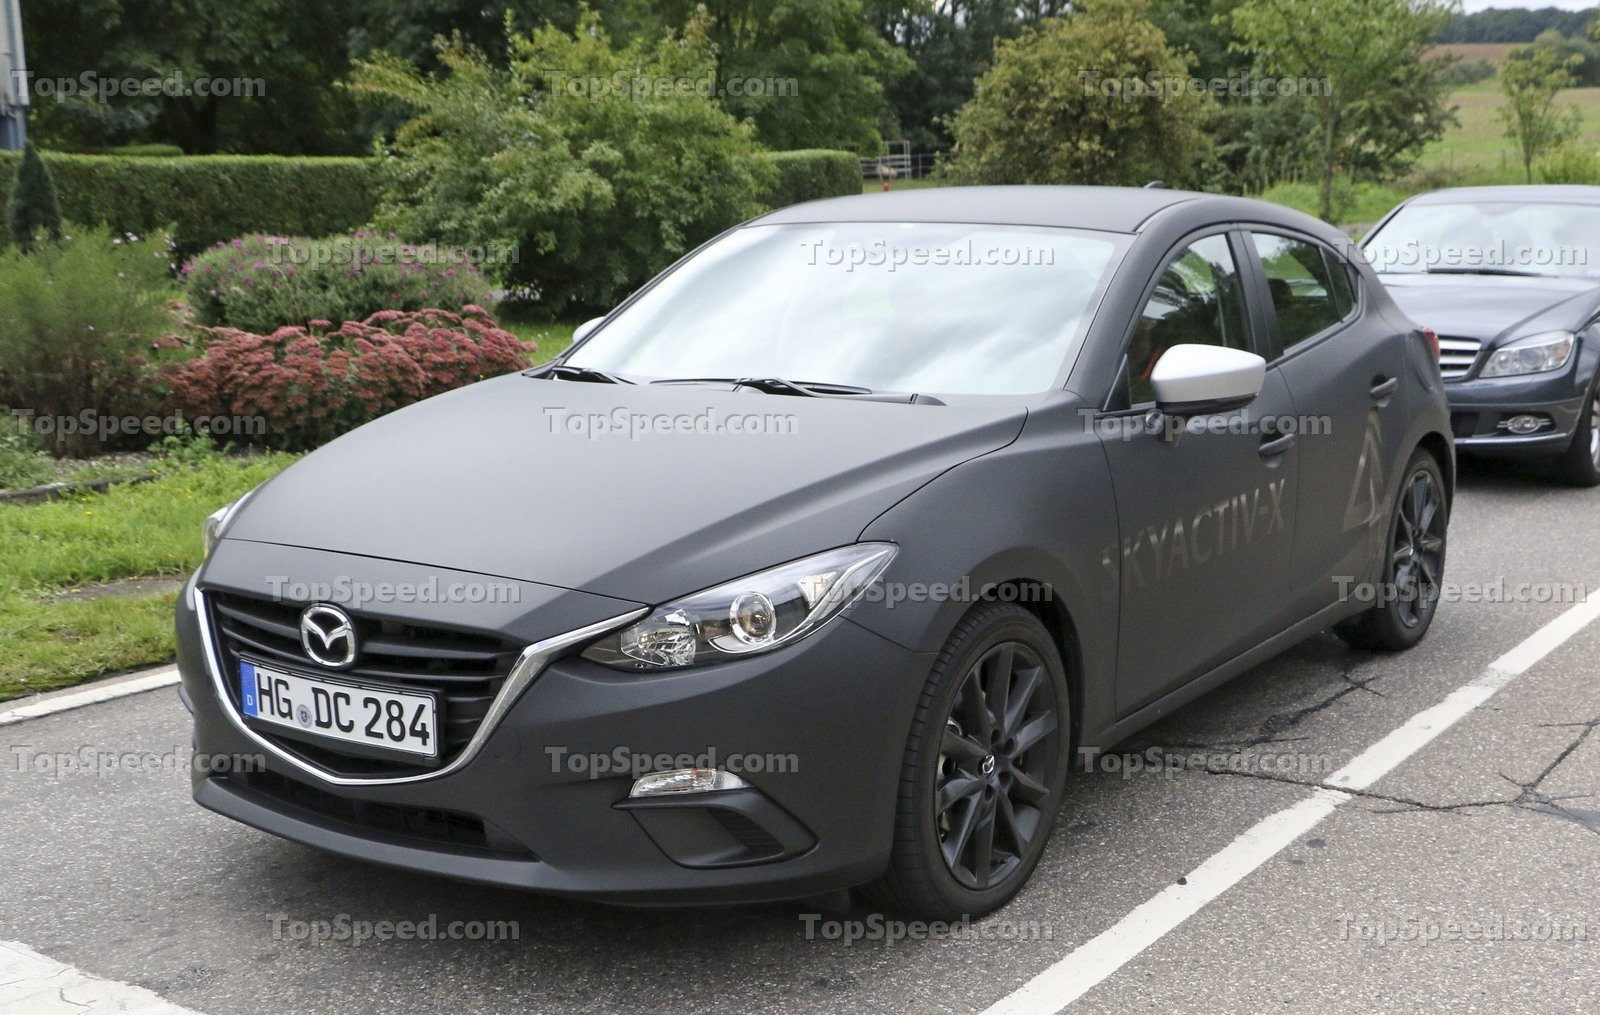 Hyundai Ix Release Date additionally Hyundai Veloster as well Hyundai Sonata Facelift together with Hyundai Elantra Sport Touchscreen likewise Hyundai Sonata Interior Dashboard. on 2017 hyundai veloster release date